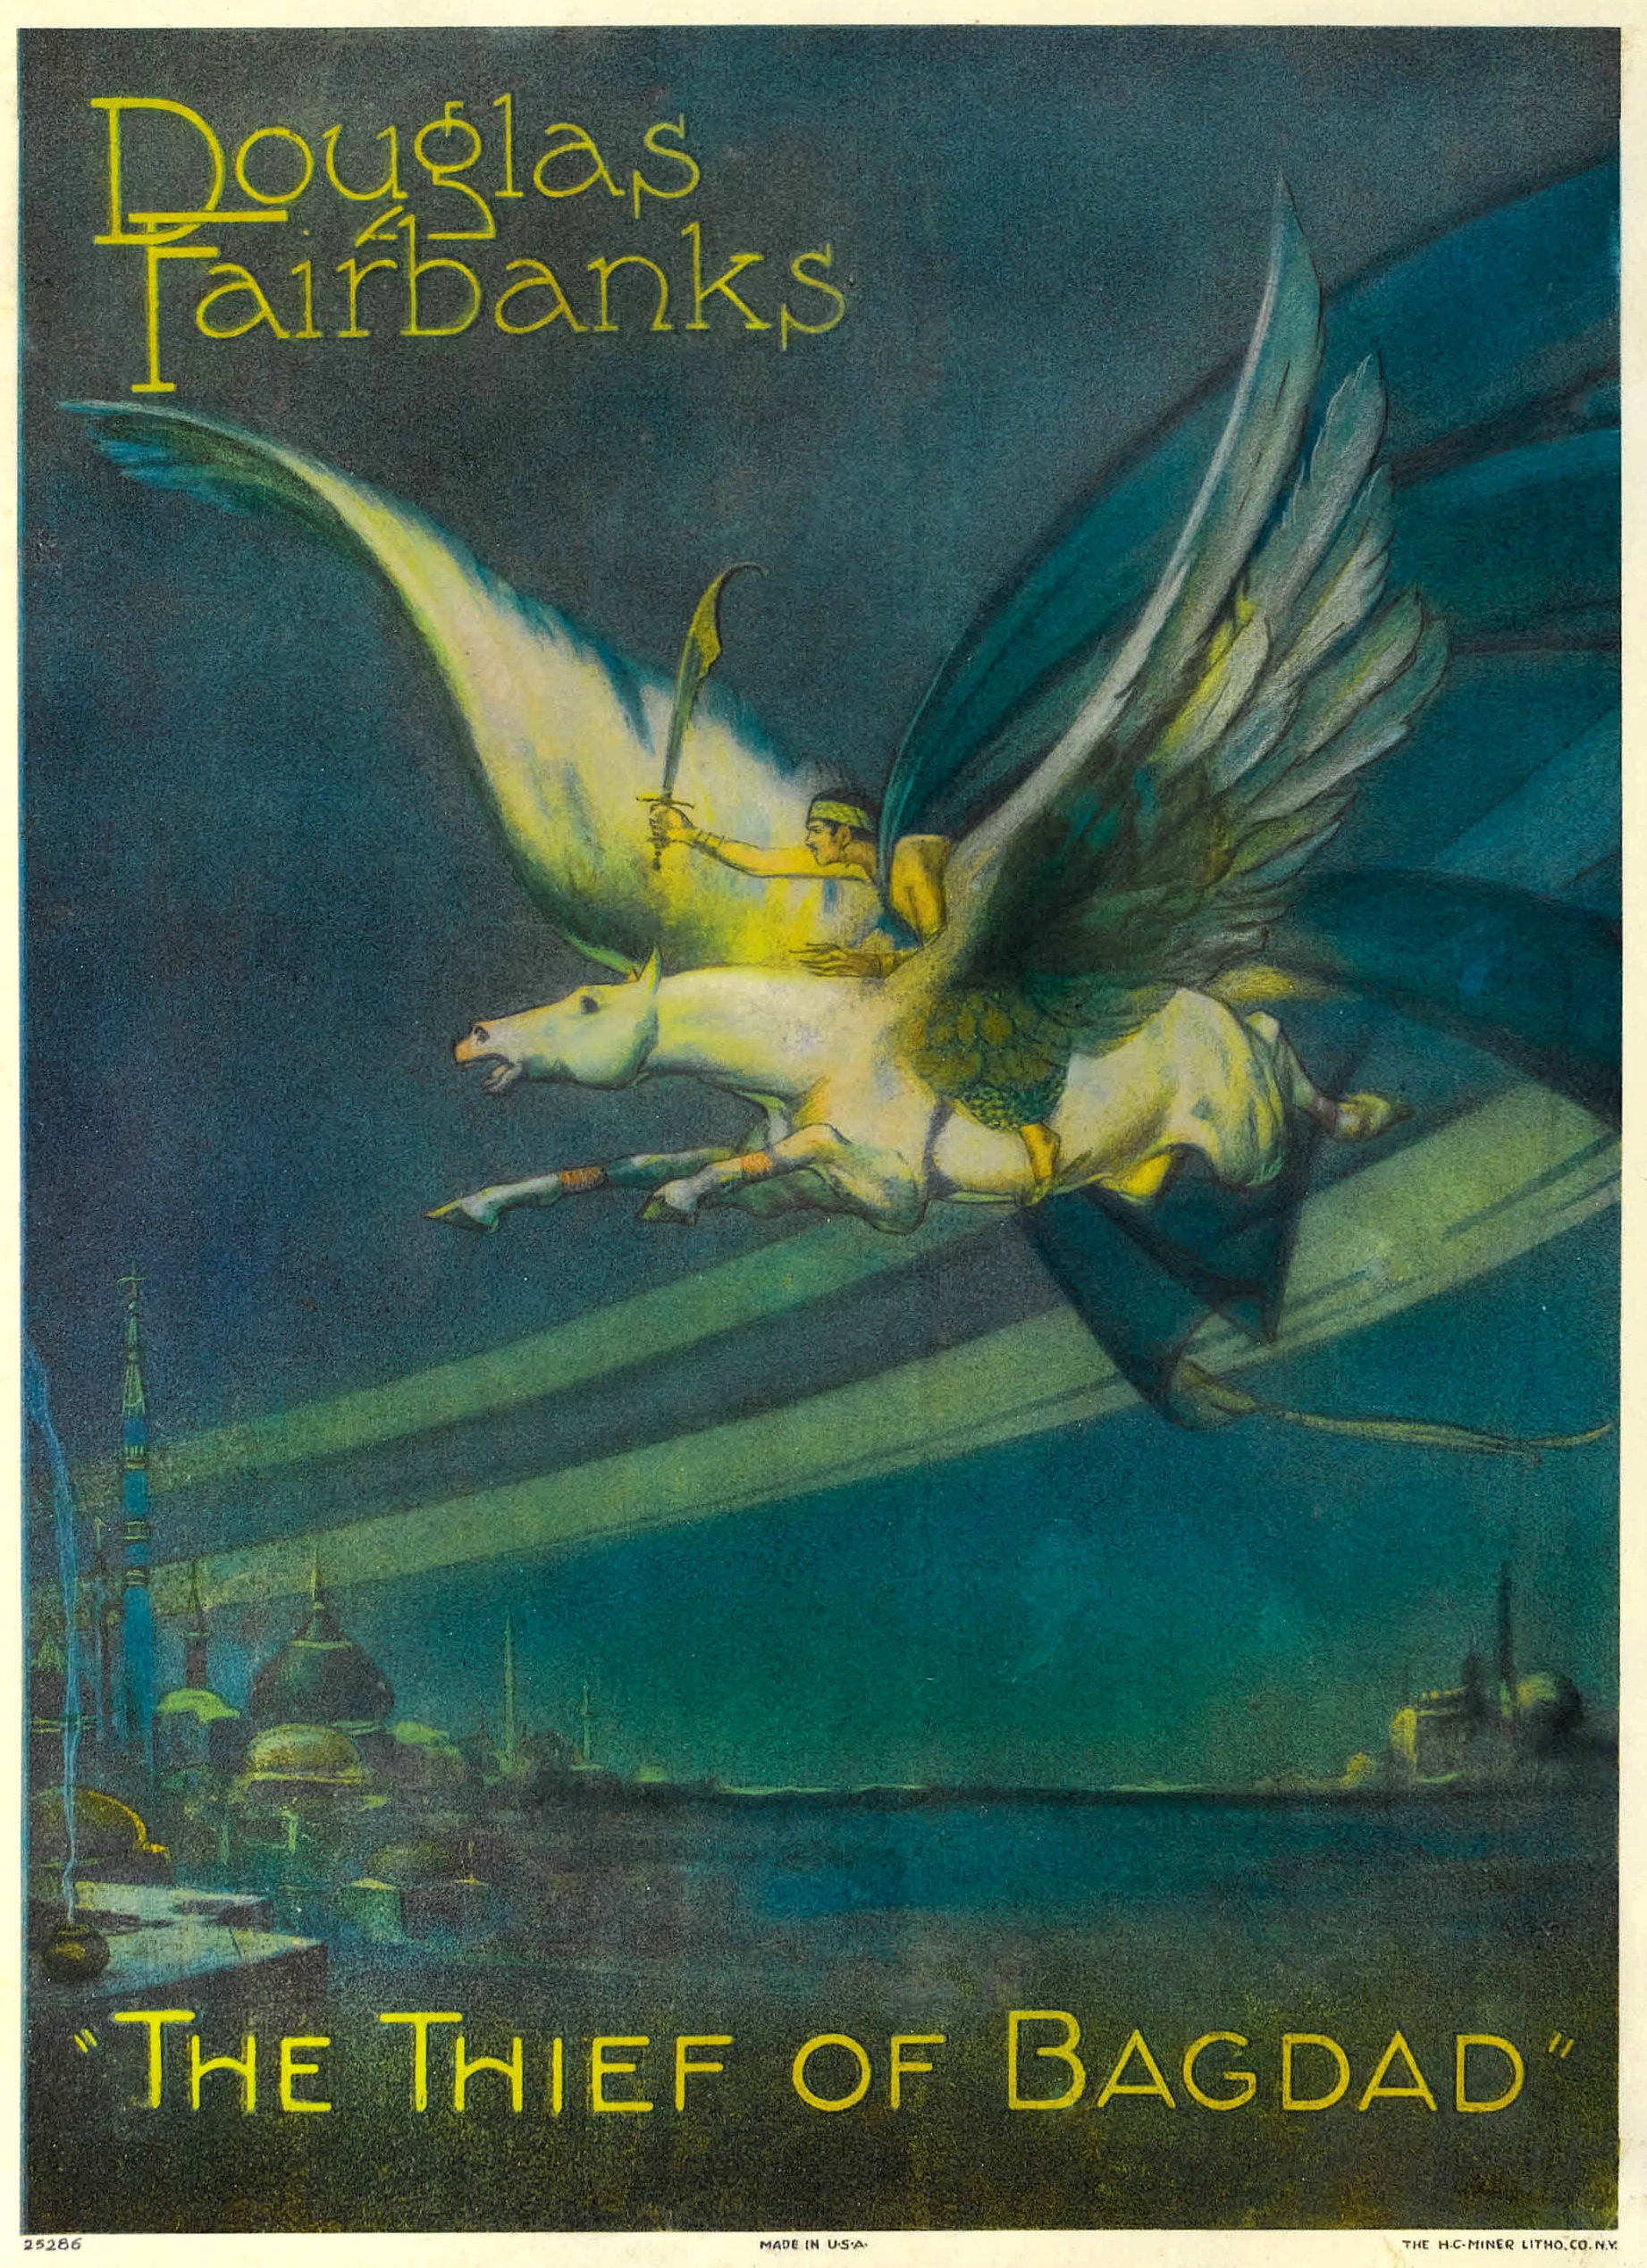 1924 The Thief of Bagdad picture image